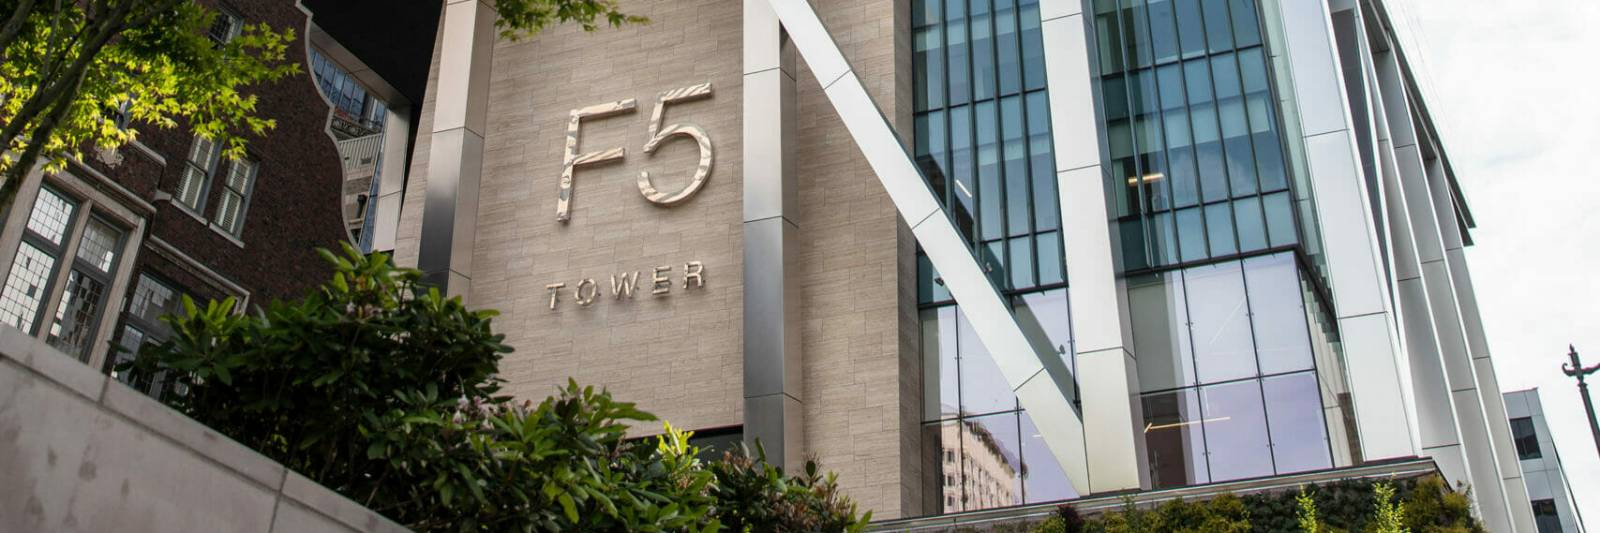 after f5 publishes proofs of concept, potential hackers get to